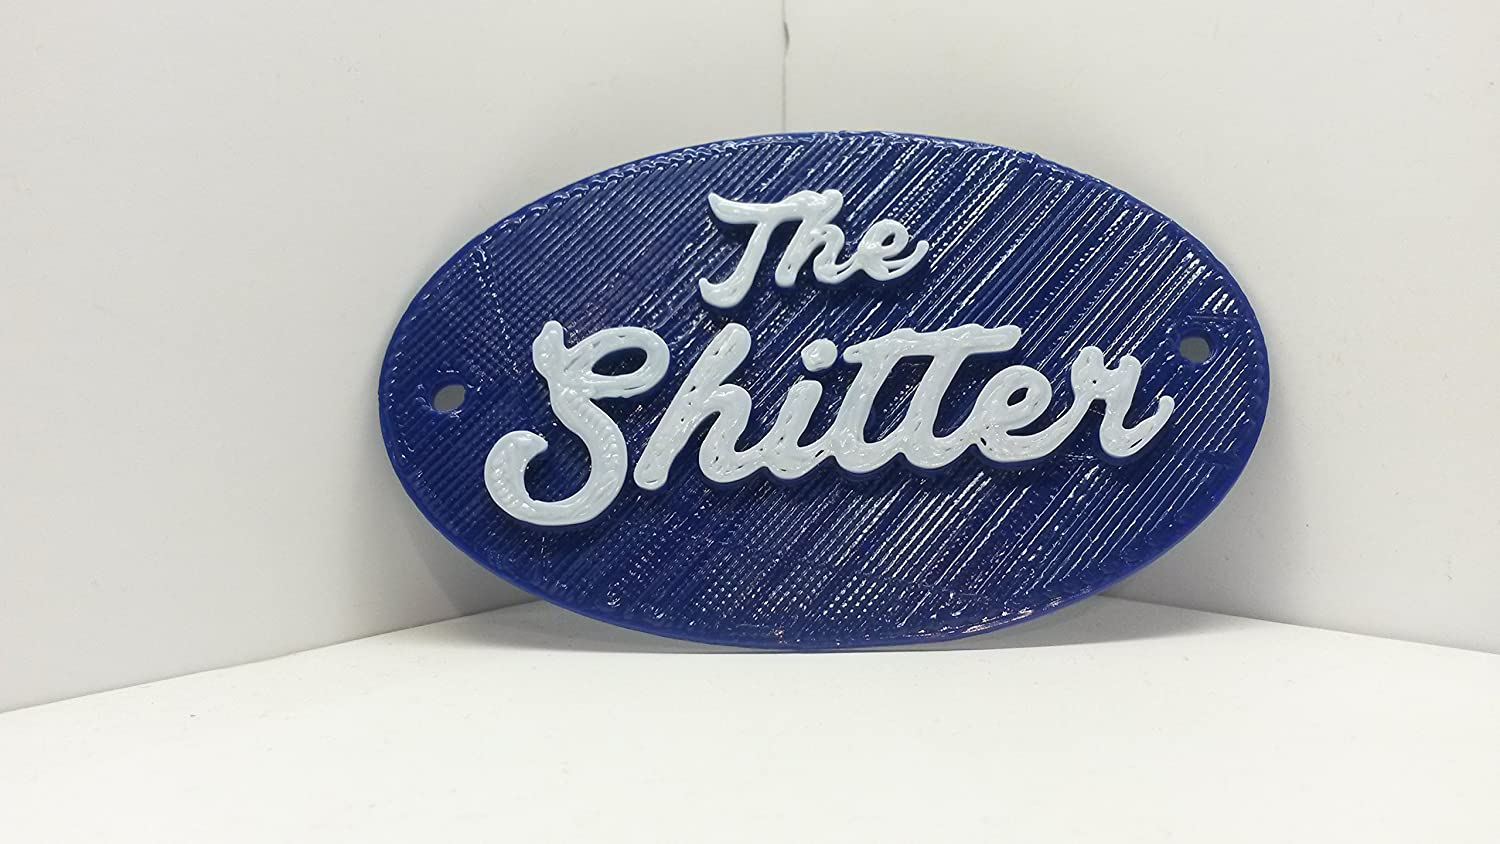 The Shitter Water Closet Toilet Bathroom Door Sign   Vintage Antique  Distressed Shabby Chic Style Loo Home Decor Faux Cast Iron: Amazon.co.uk:  Kitchen U0026 ...